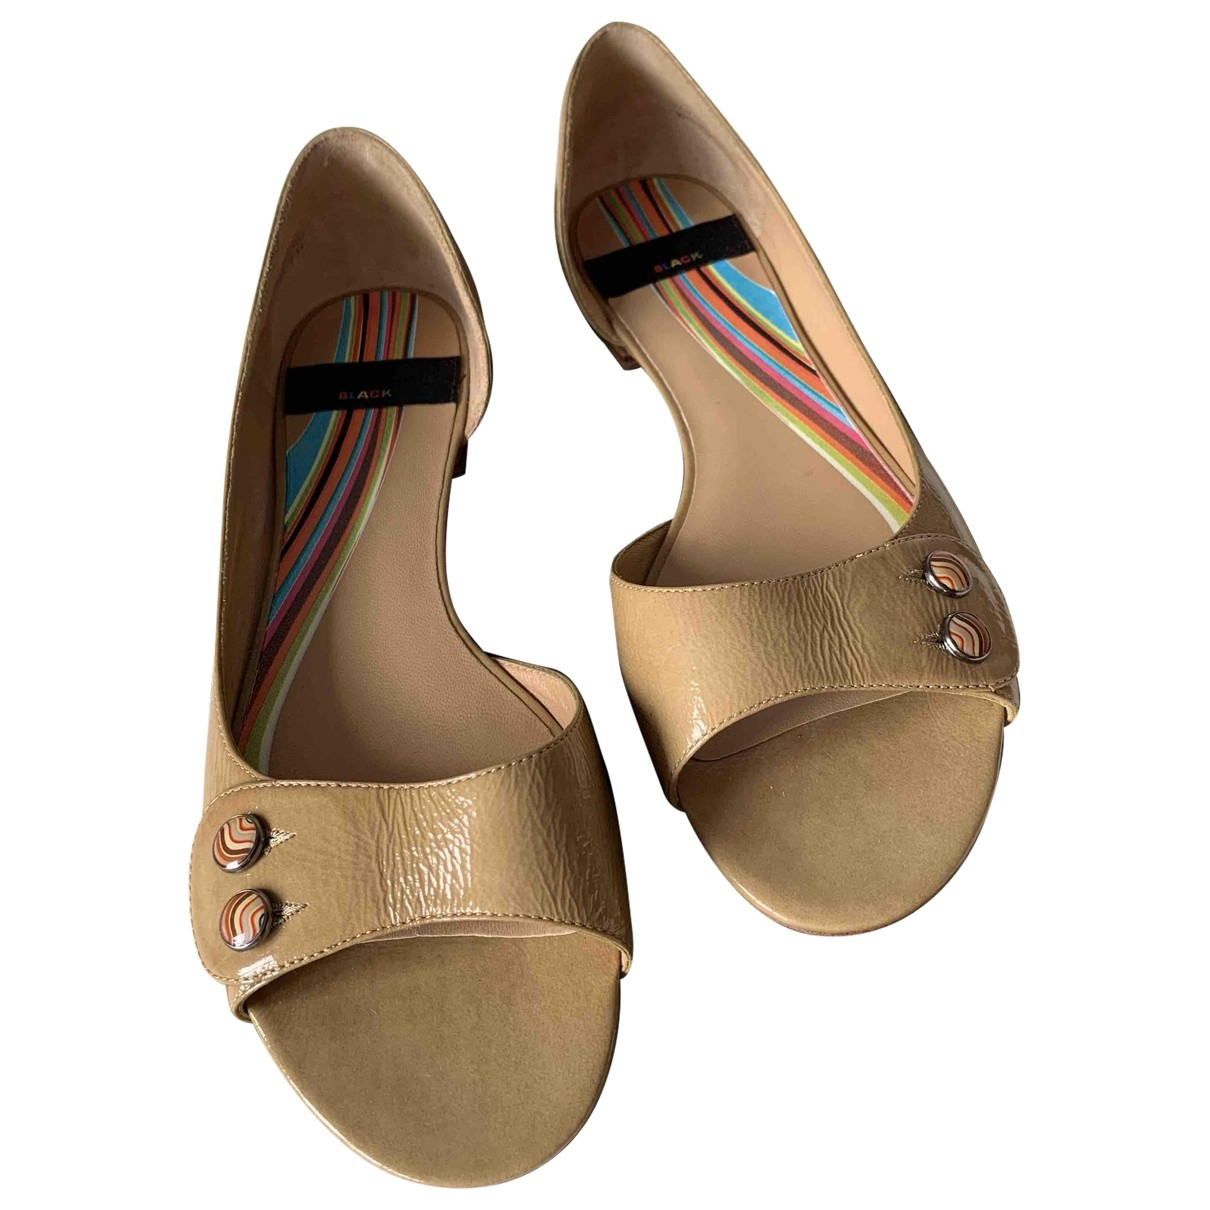 Paul Smith \N Beige Leather Sandals for Women 37 EU